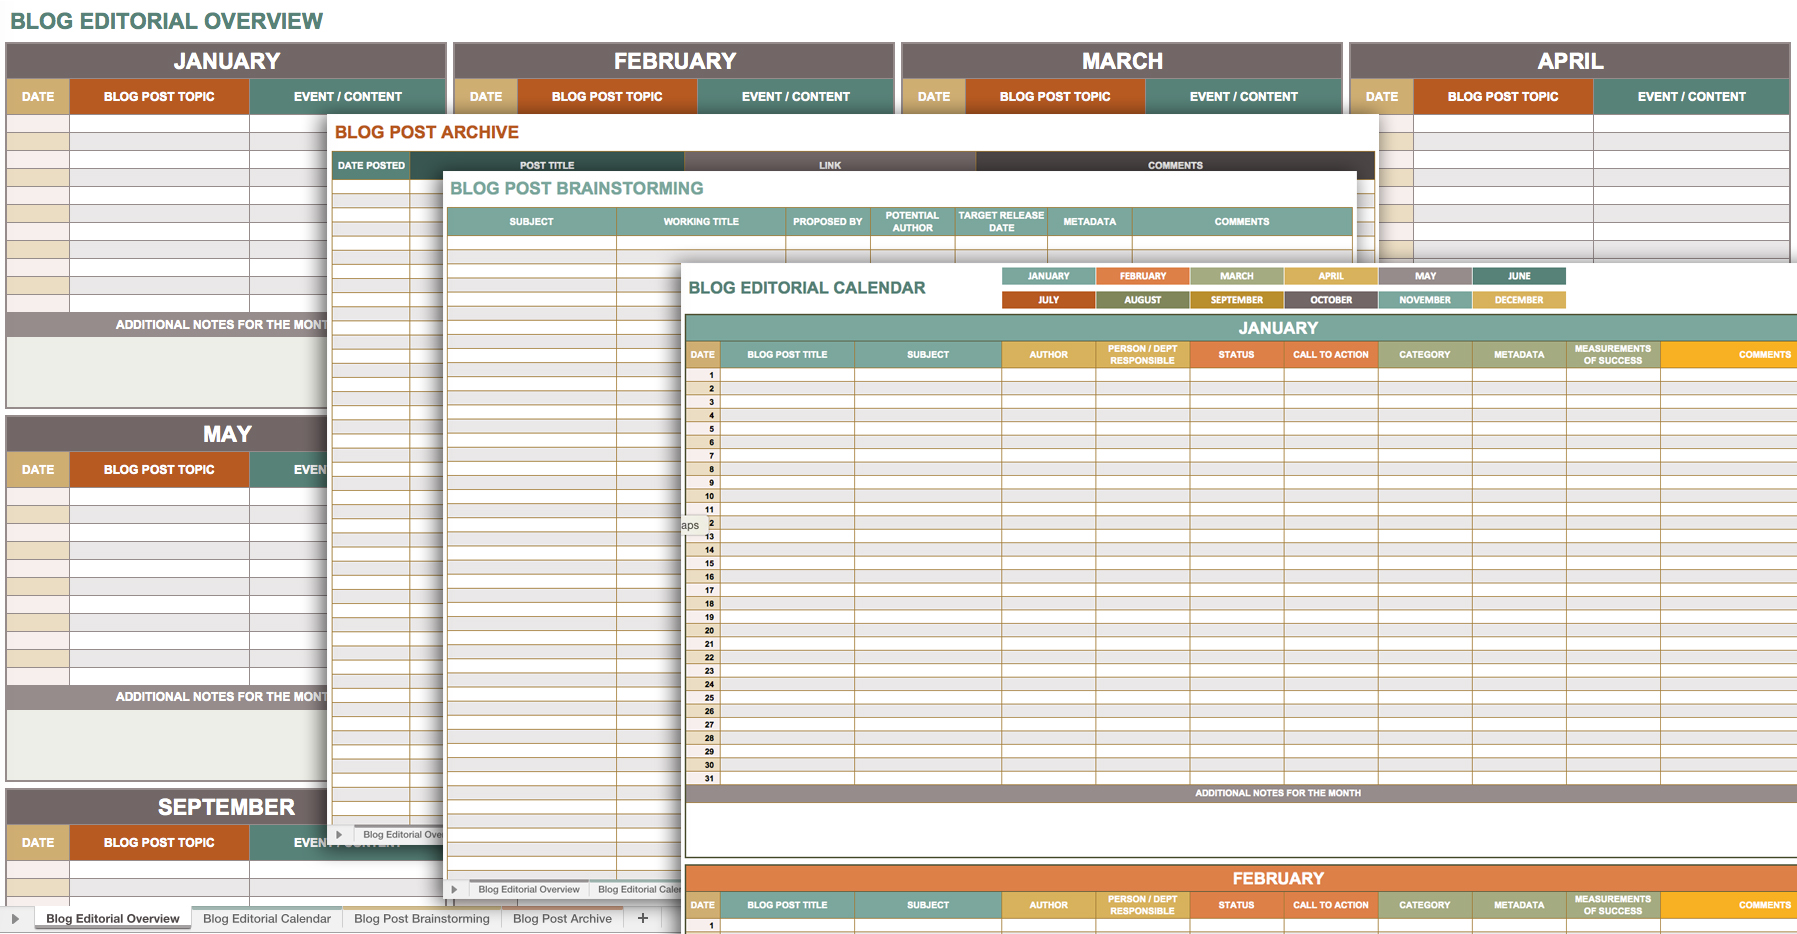 how to compare 2 worksheets in excel